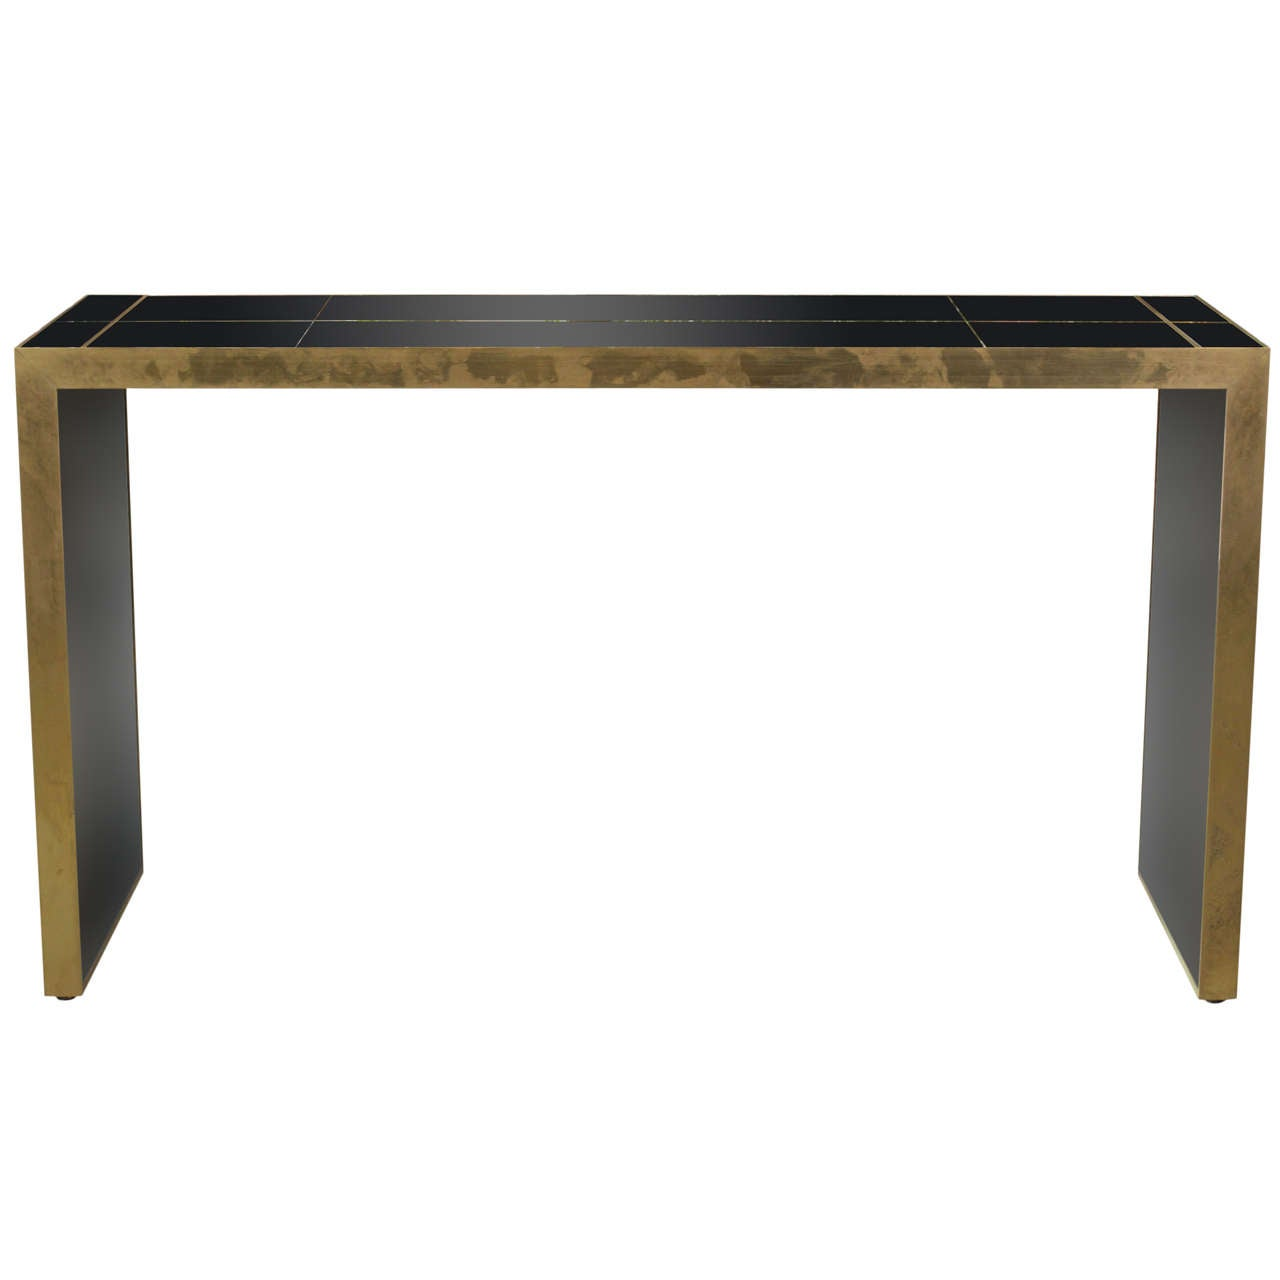 Black mirrored parson style console table at 1stdibs for Black and mirrored console table